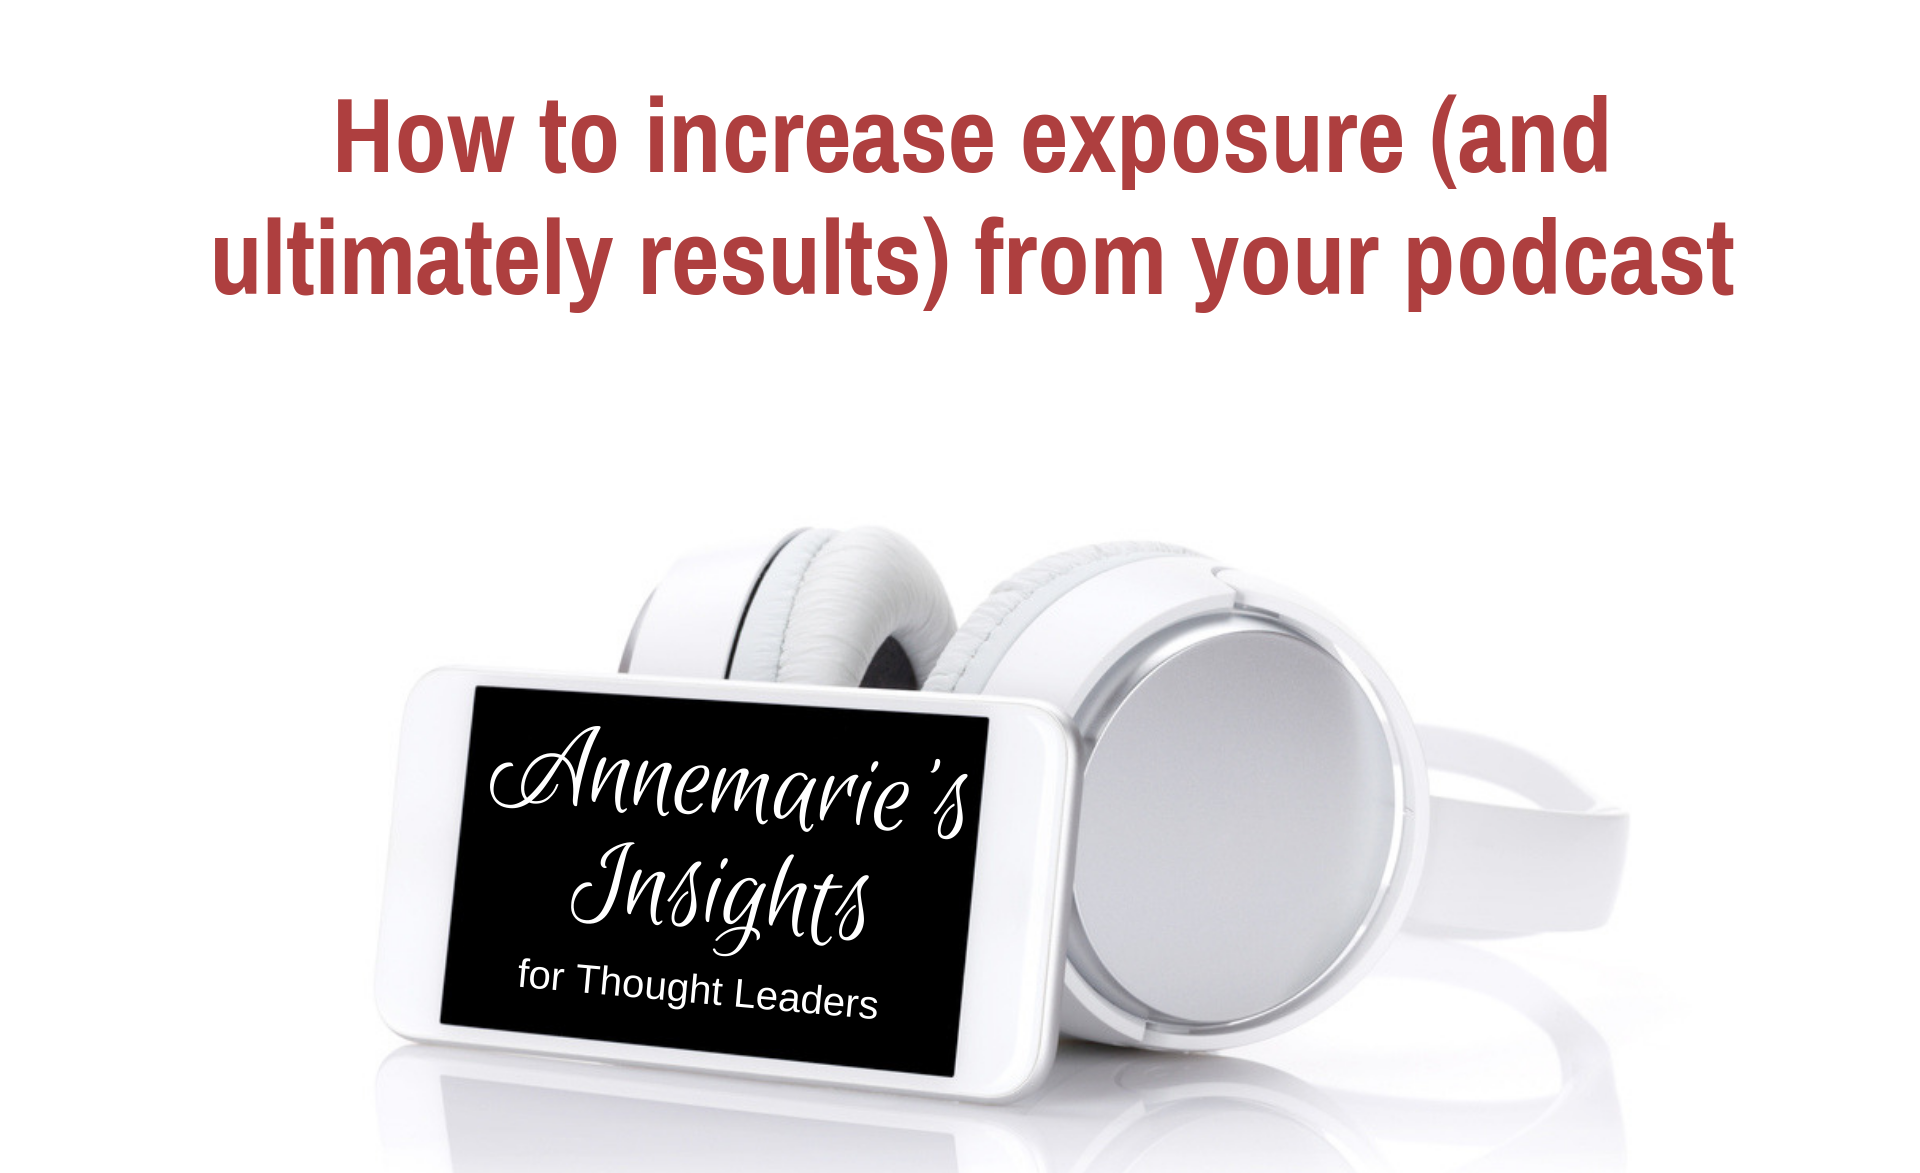 How to increase exposure (and ultimately results) from your podcast